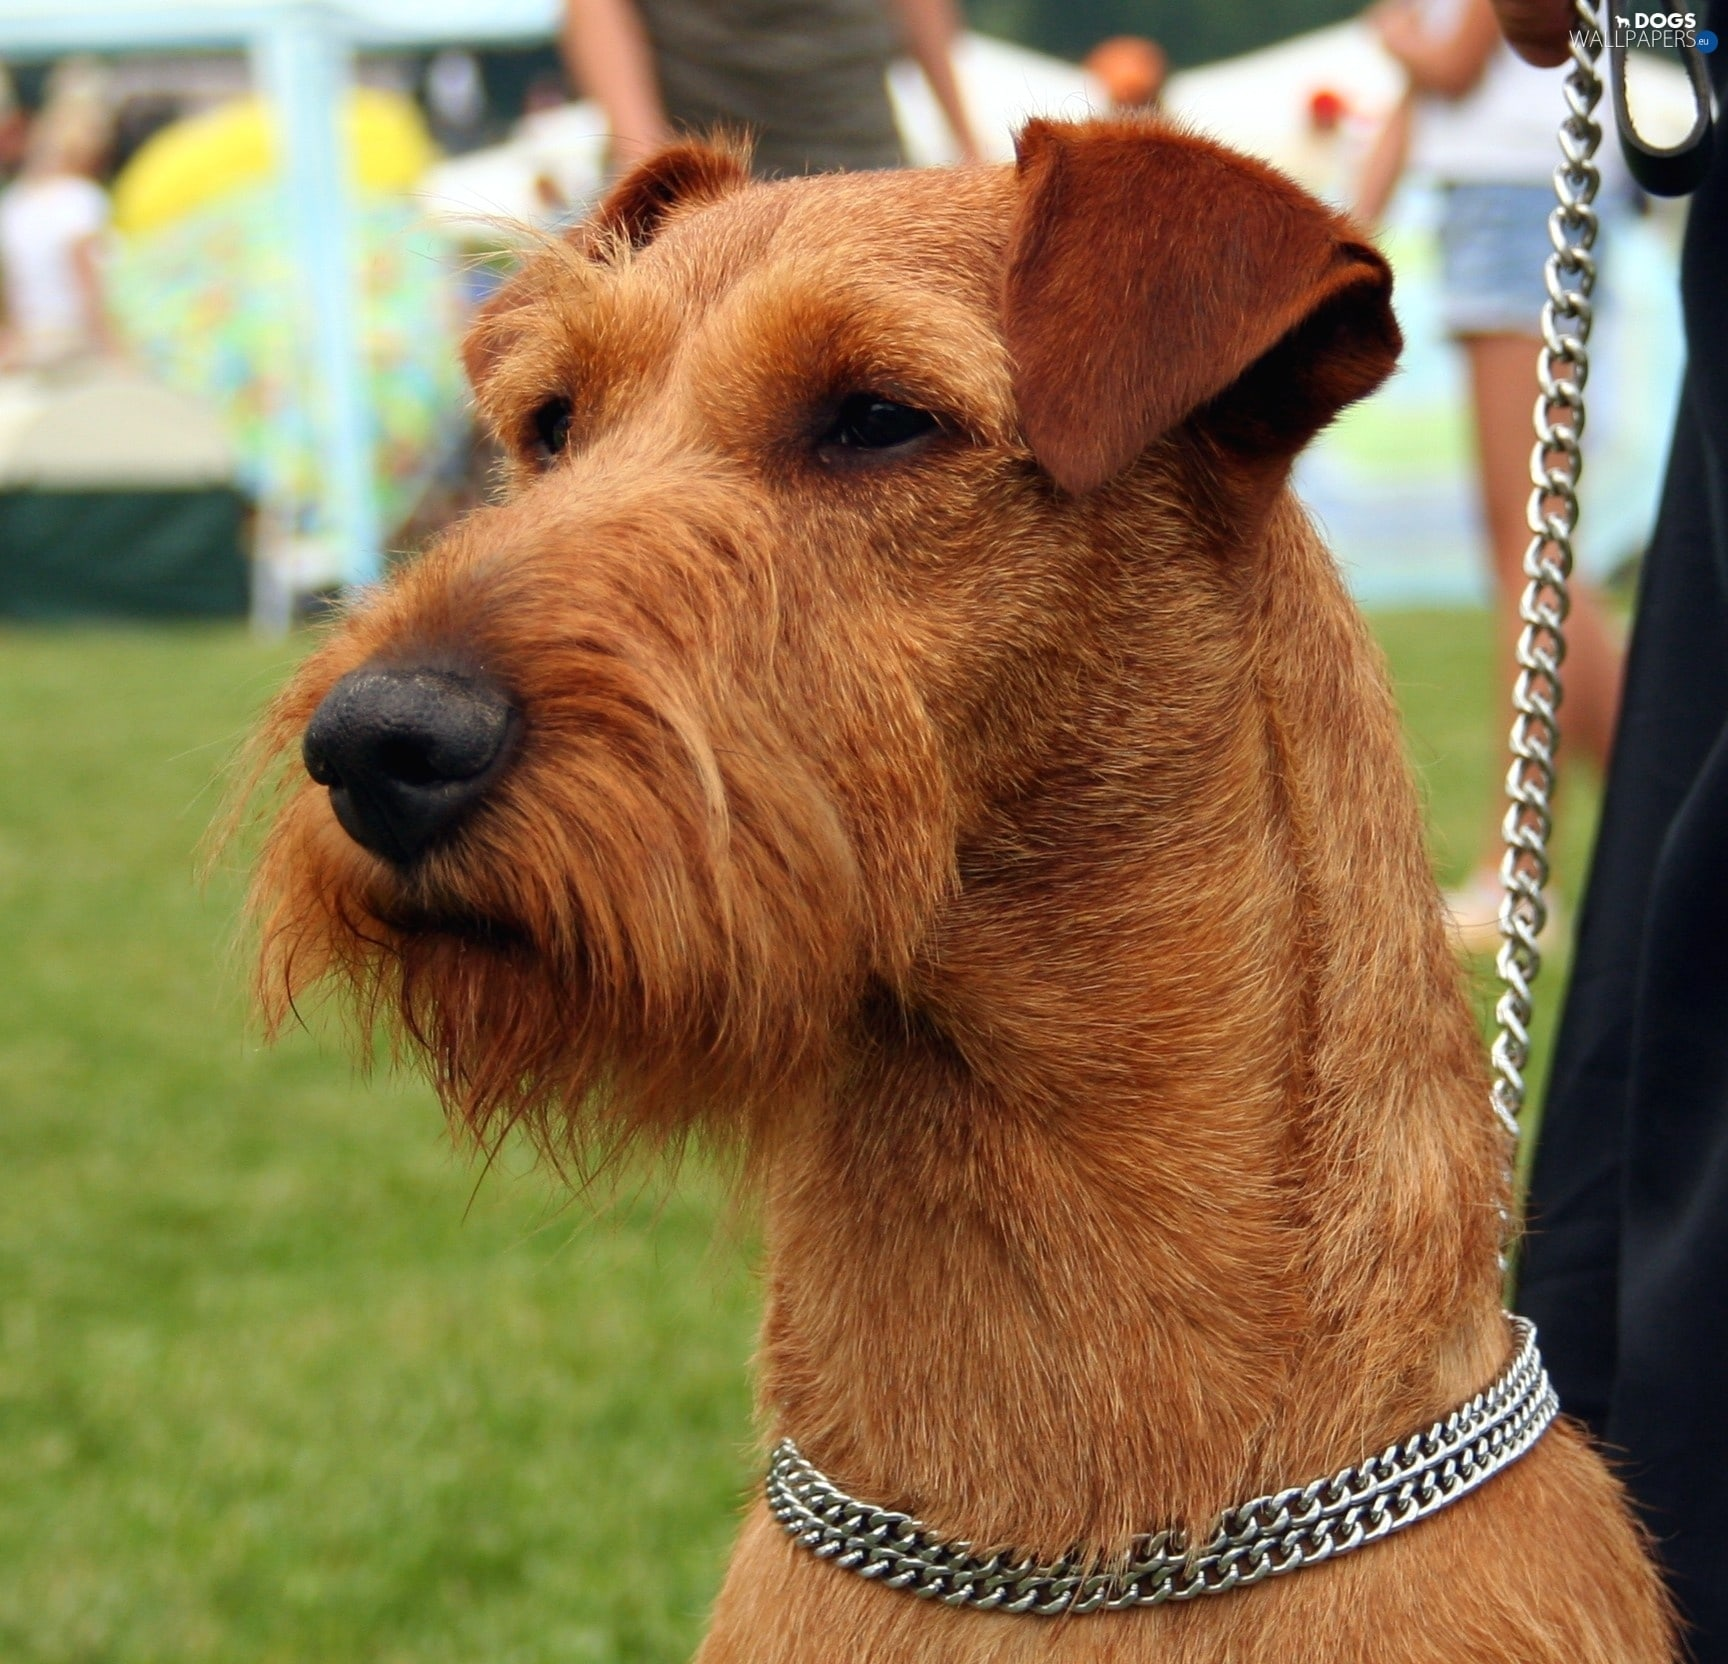 Irish Terrier Full hd wallpapers